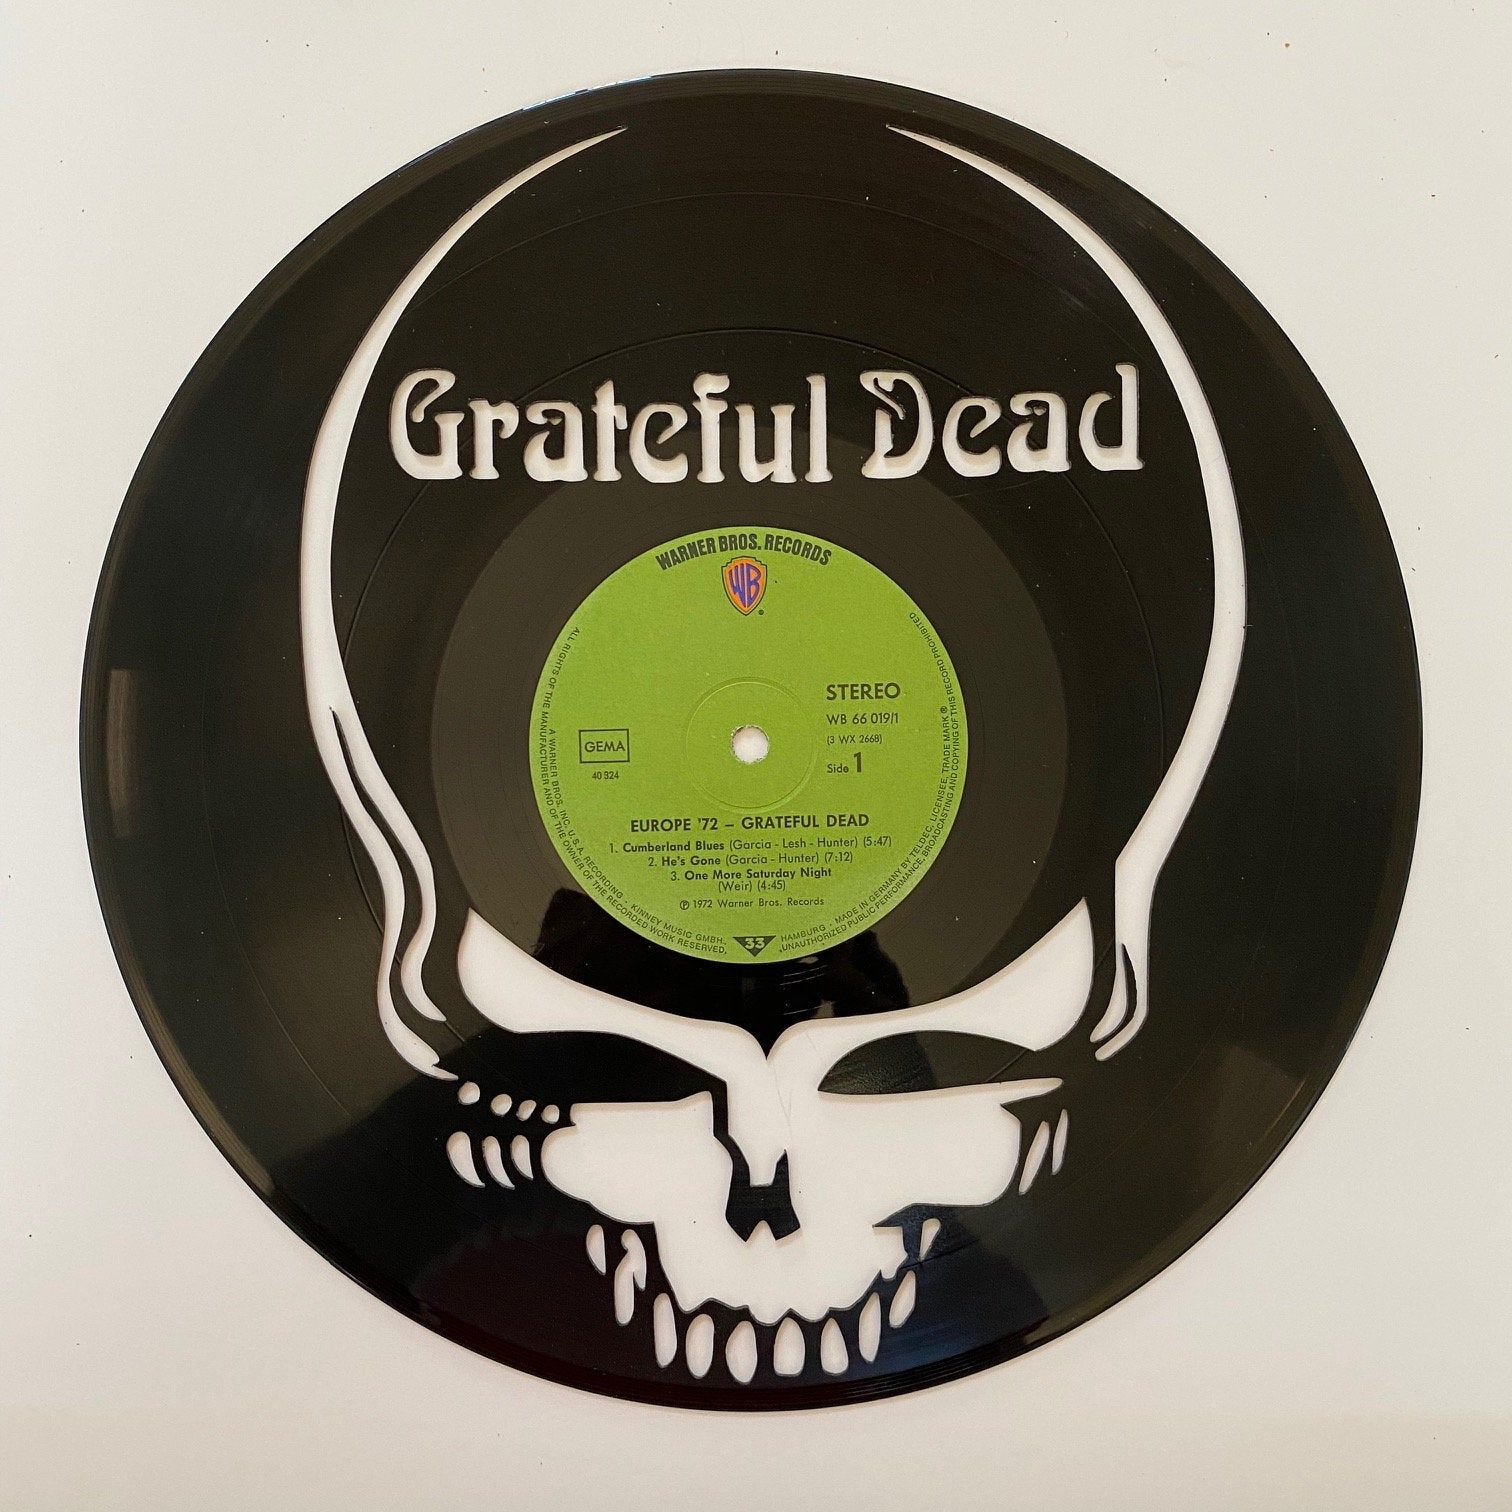 Excited To Share The Latest Addition To My Etsy Shop Grateful Dead Vinyl Record Art Https Etsy Me 3 In 2020 Vinyl Record Art Grateful Dead Vinyl Led Zeppelin Vinyl